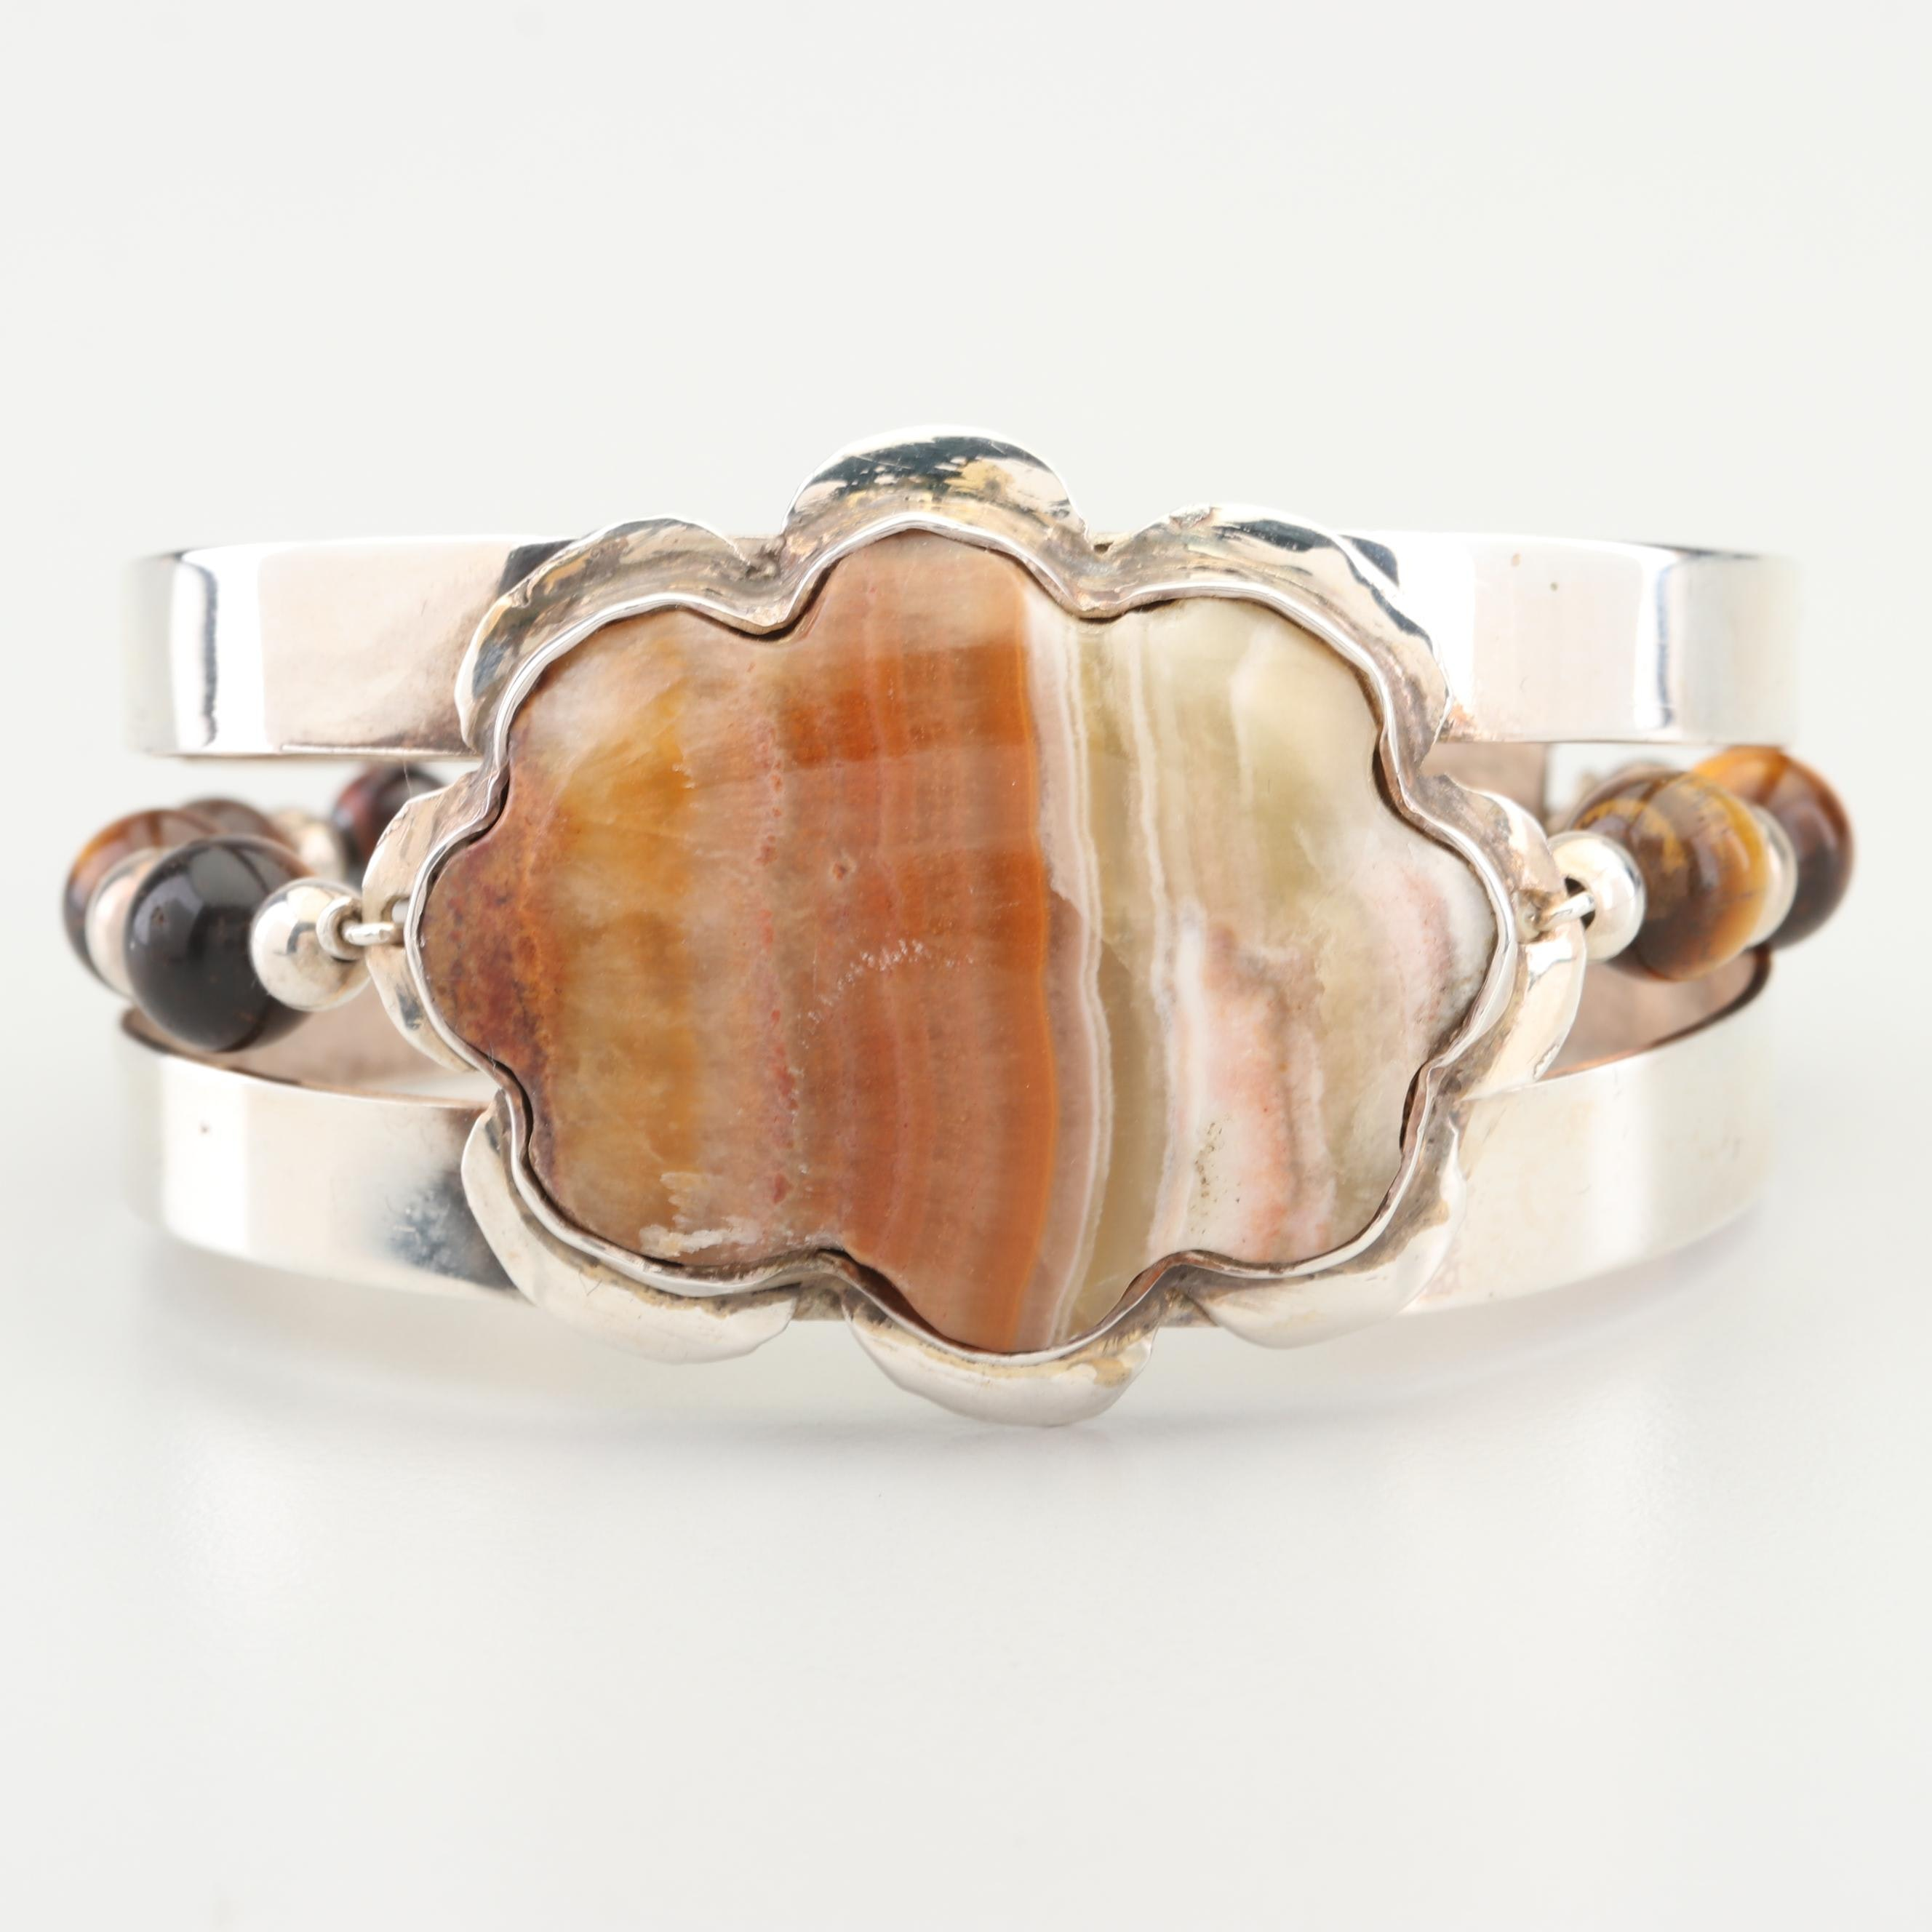 Bill Kirkham Handcrafted Sterling Silver Agate and Tigers Eye Cuff Bracelet